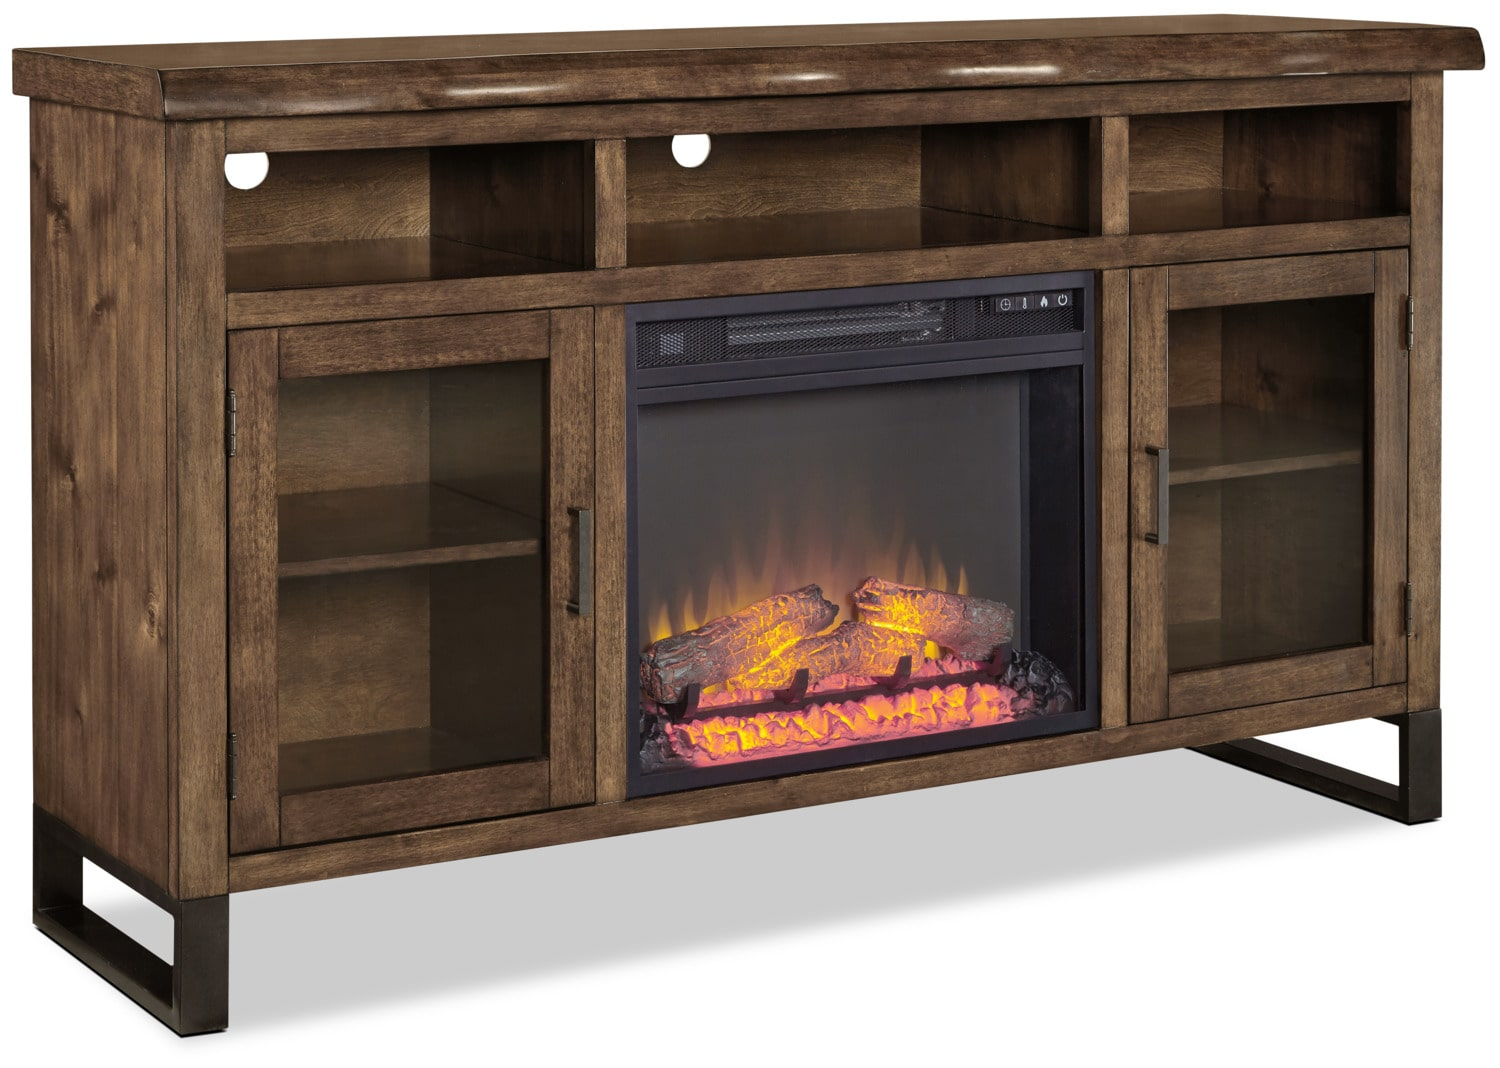 "Esmarina 62"" TV Stand with Log Firebox"